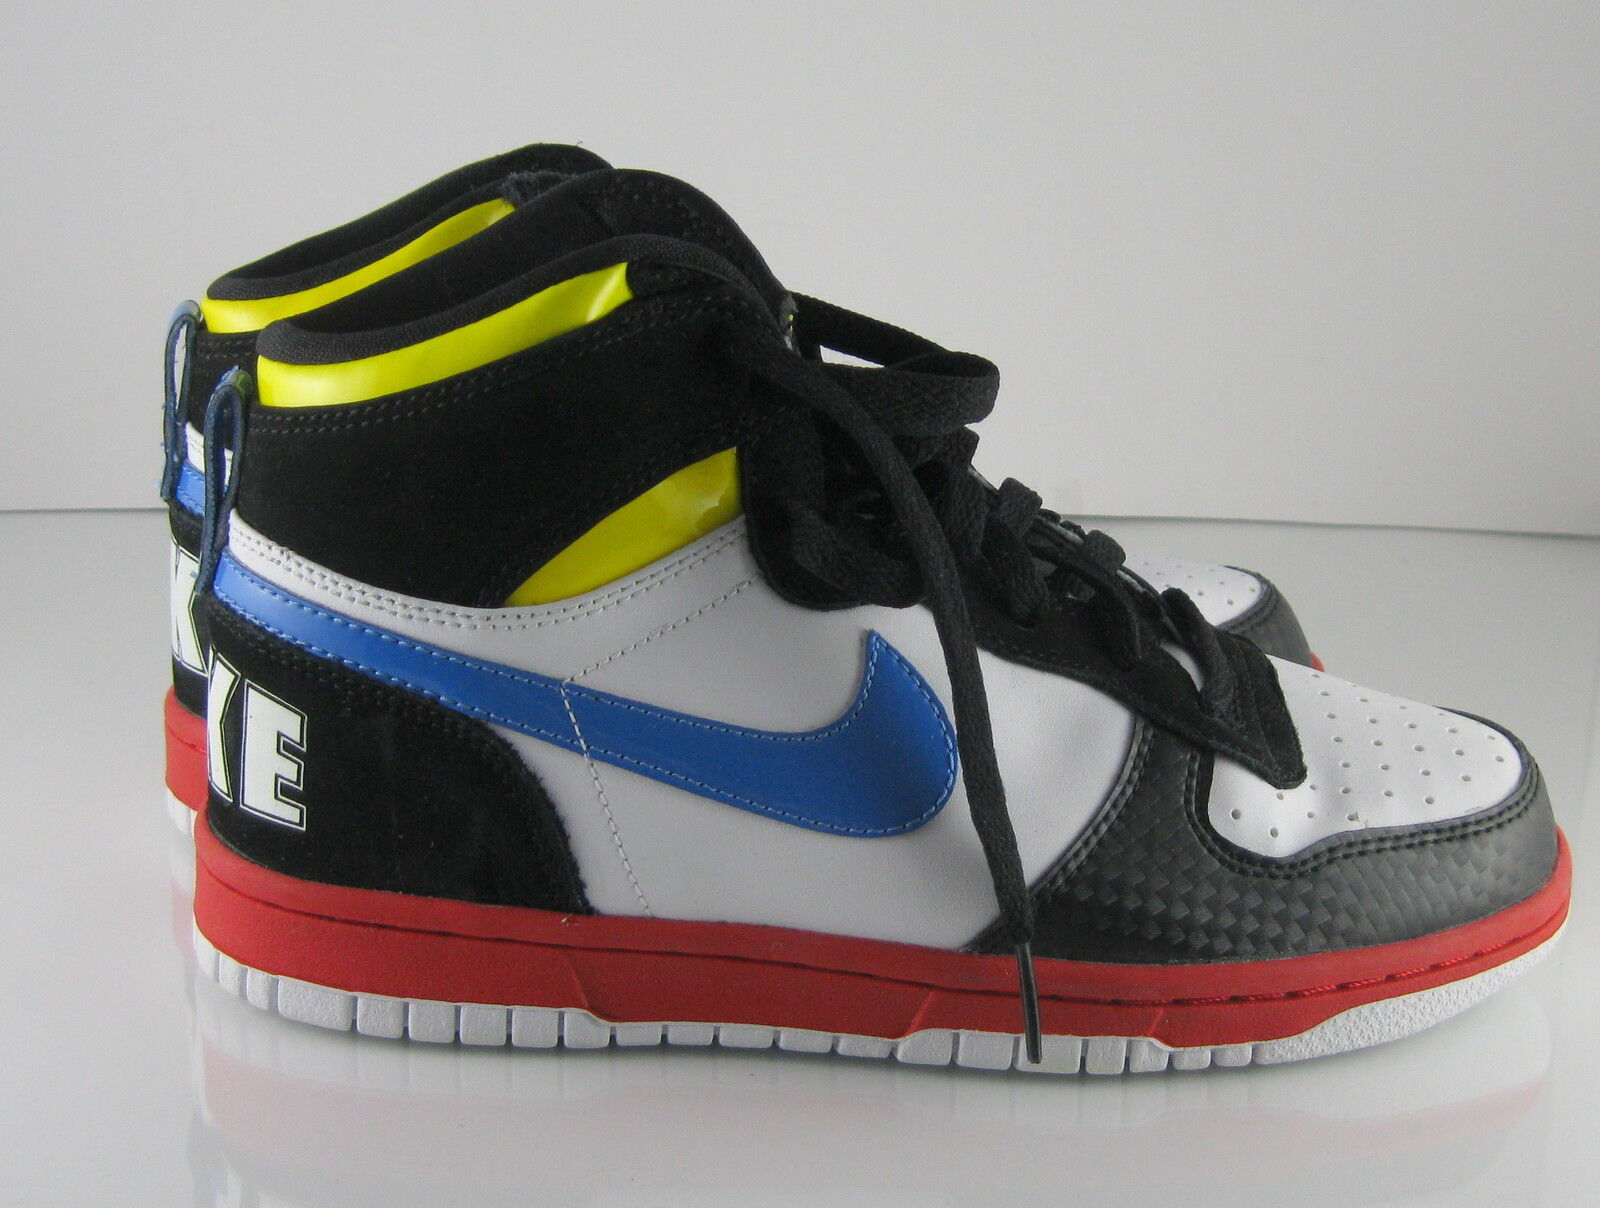 Nike Big Nike Gs Grade School Leather White Blue Black Red Size 5.5Youth